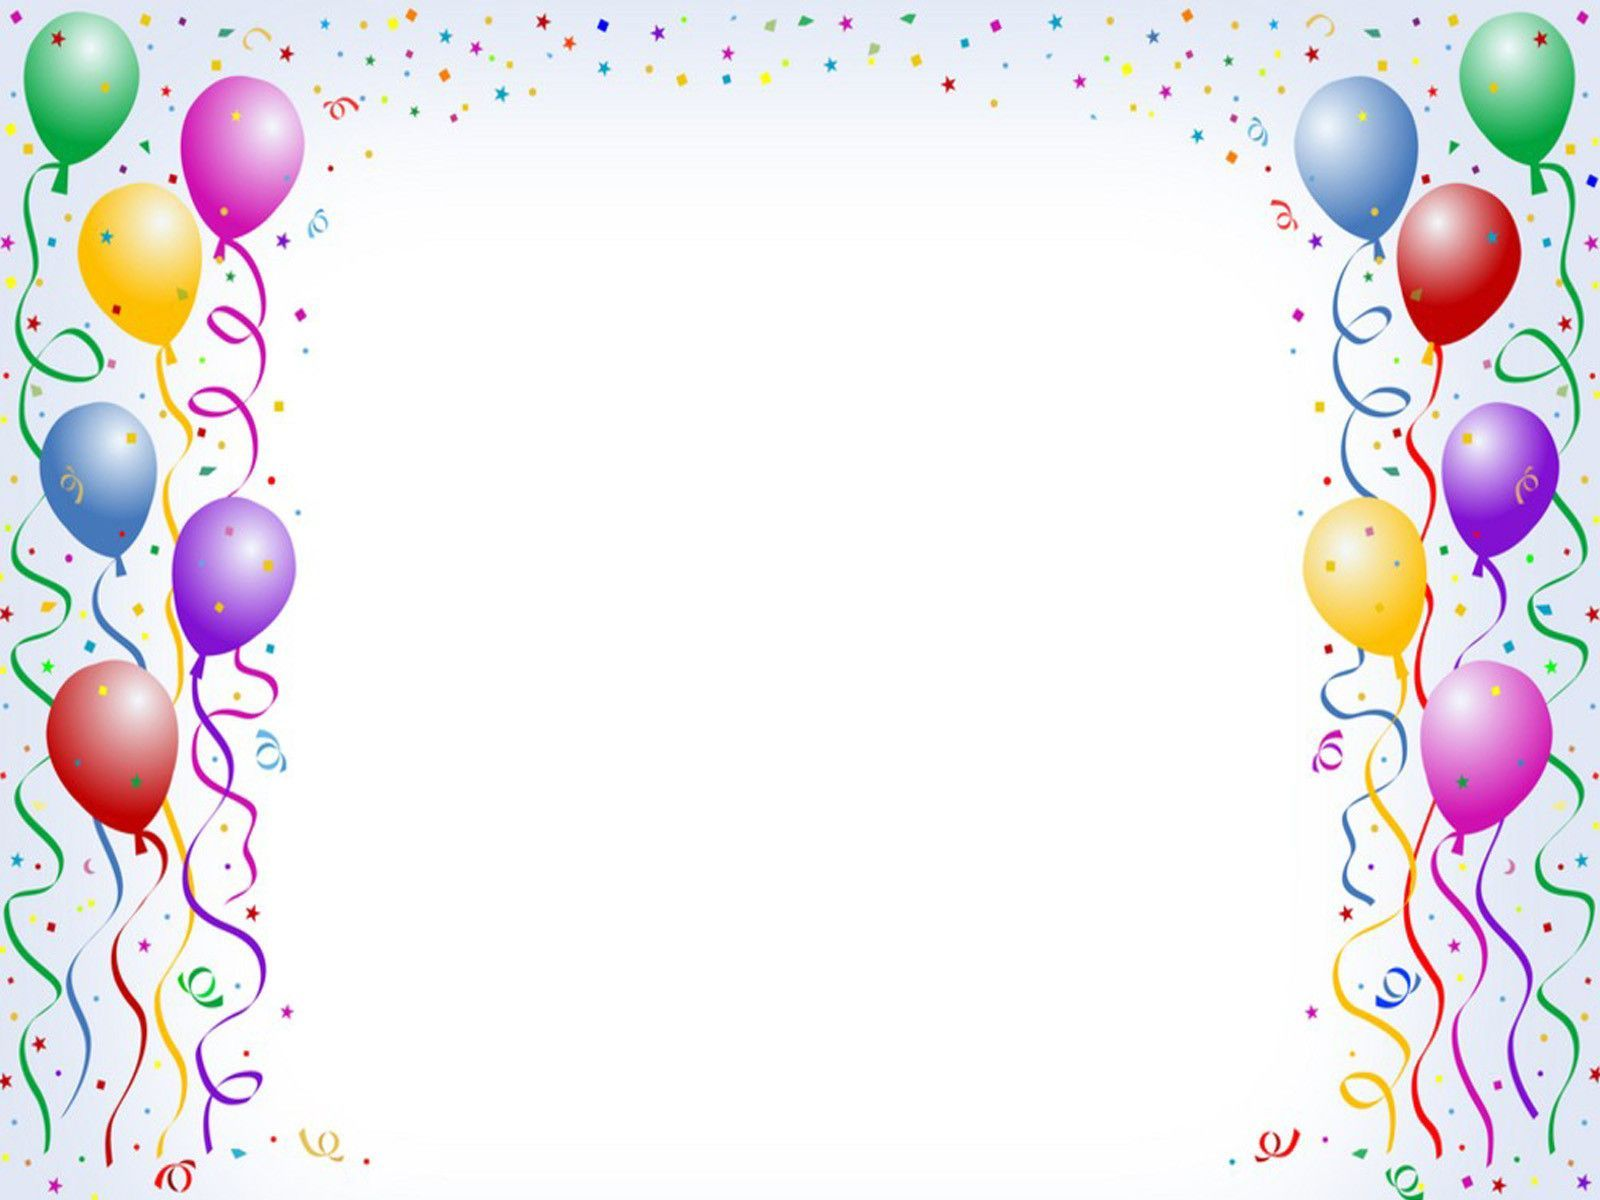 Balloon Birthday Background 1600 1200 Jpg Techcode Computer Happy Birthday Clip Art Birthday Background Birthday Clips